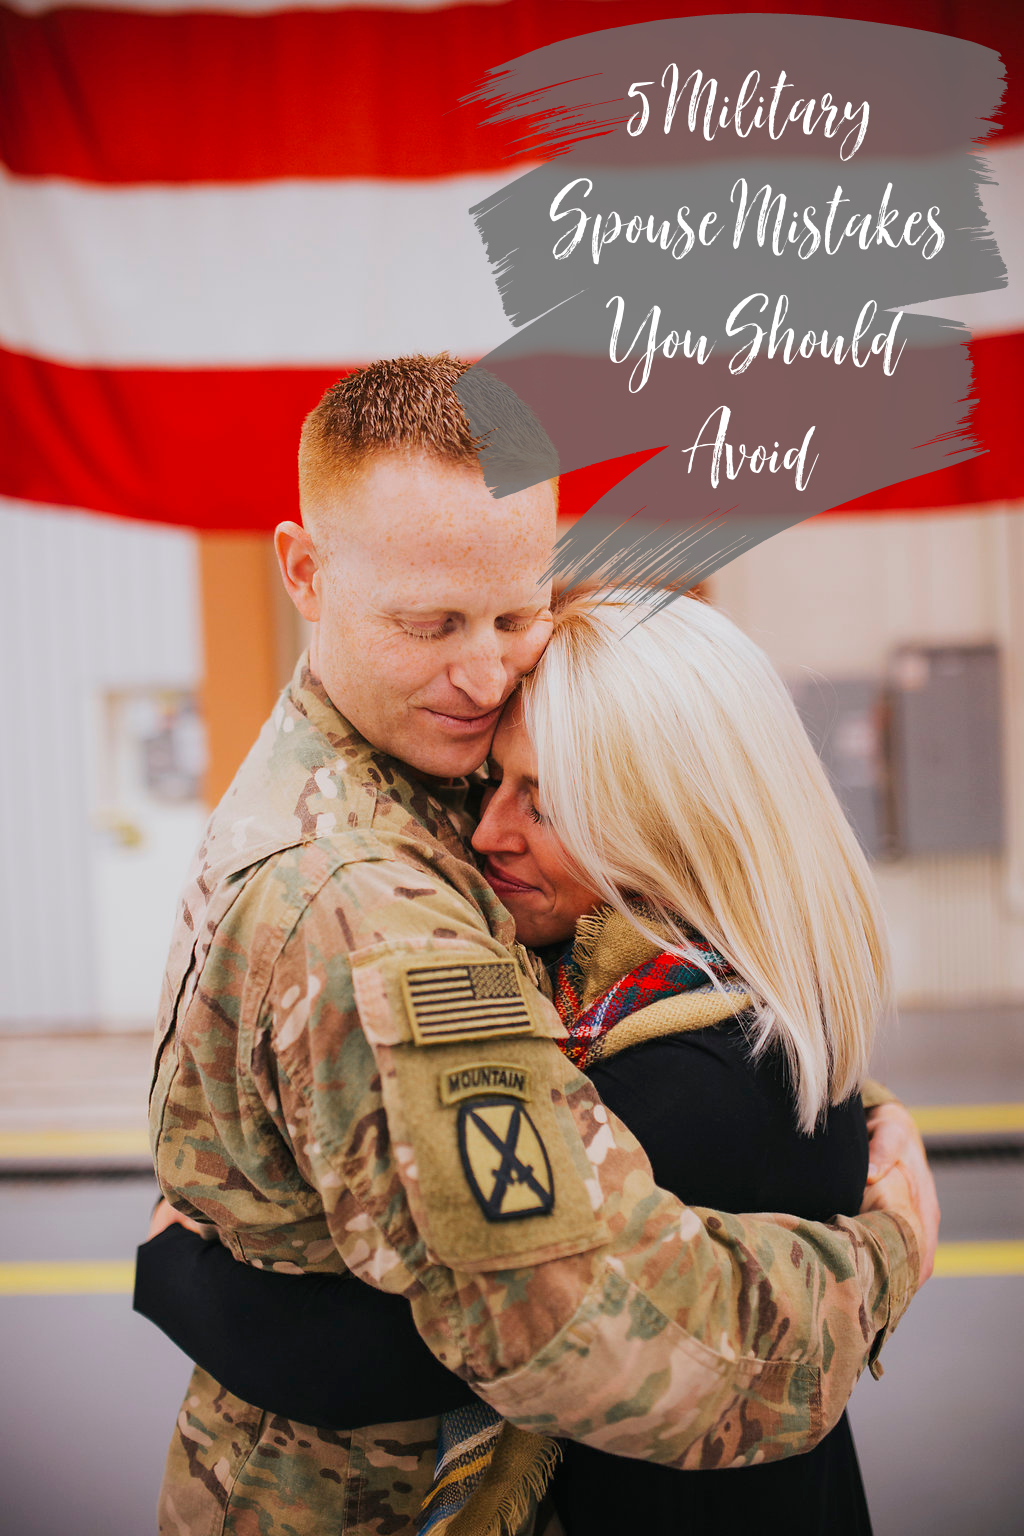 5 military spouse mistakes to avoid